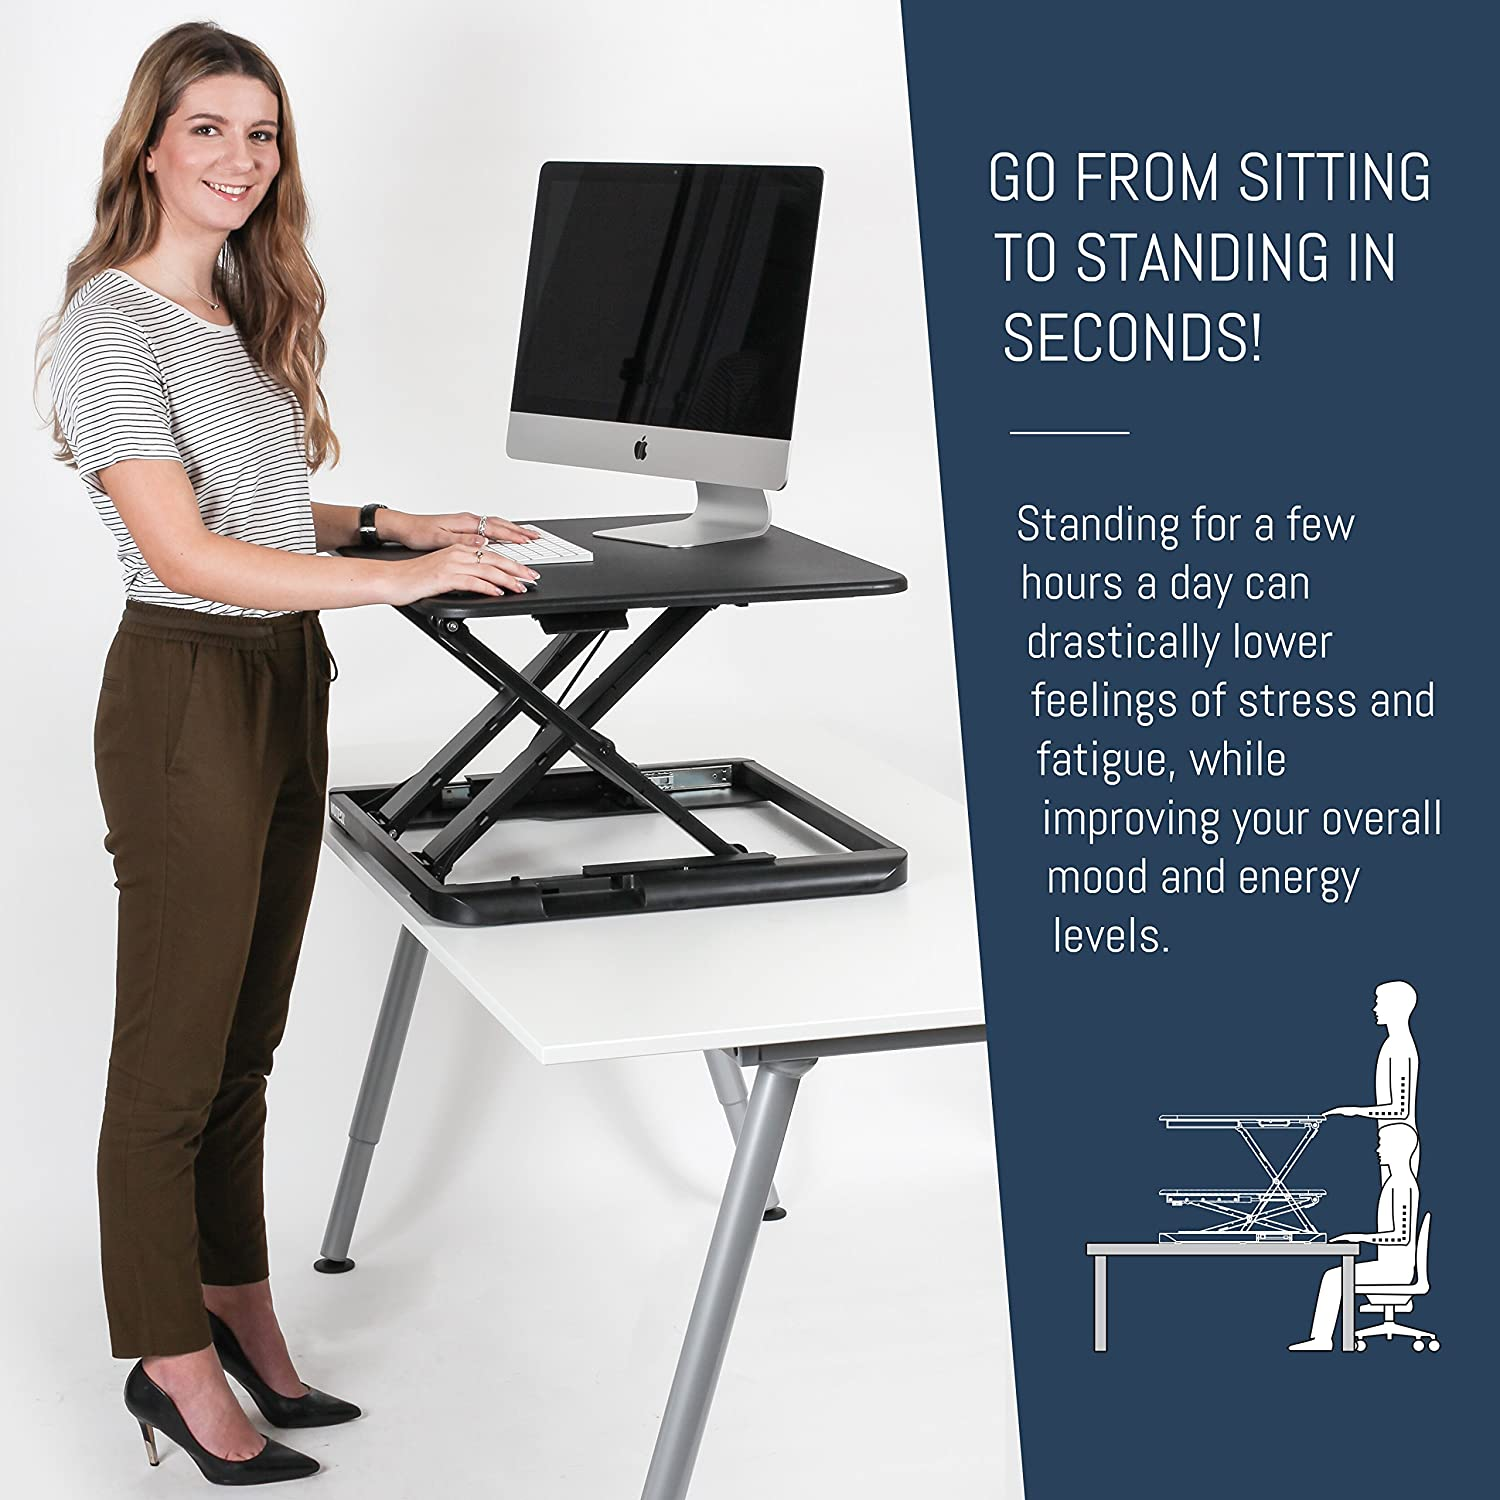 Wuteku – Sit Stand Desk – Noir – 1 Lot 5060494270094